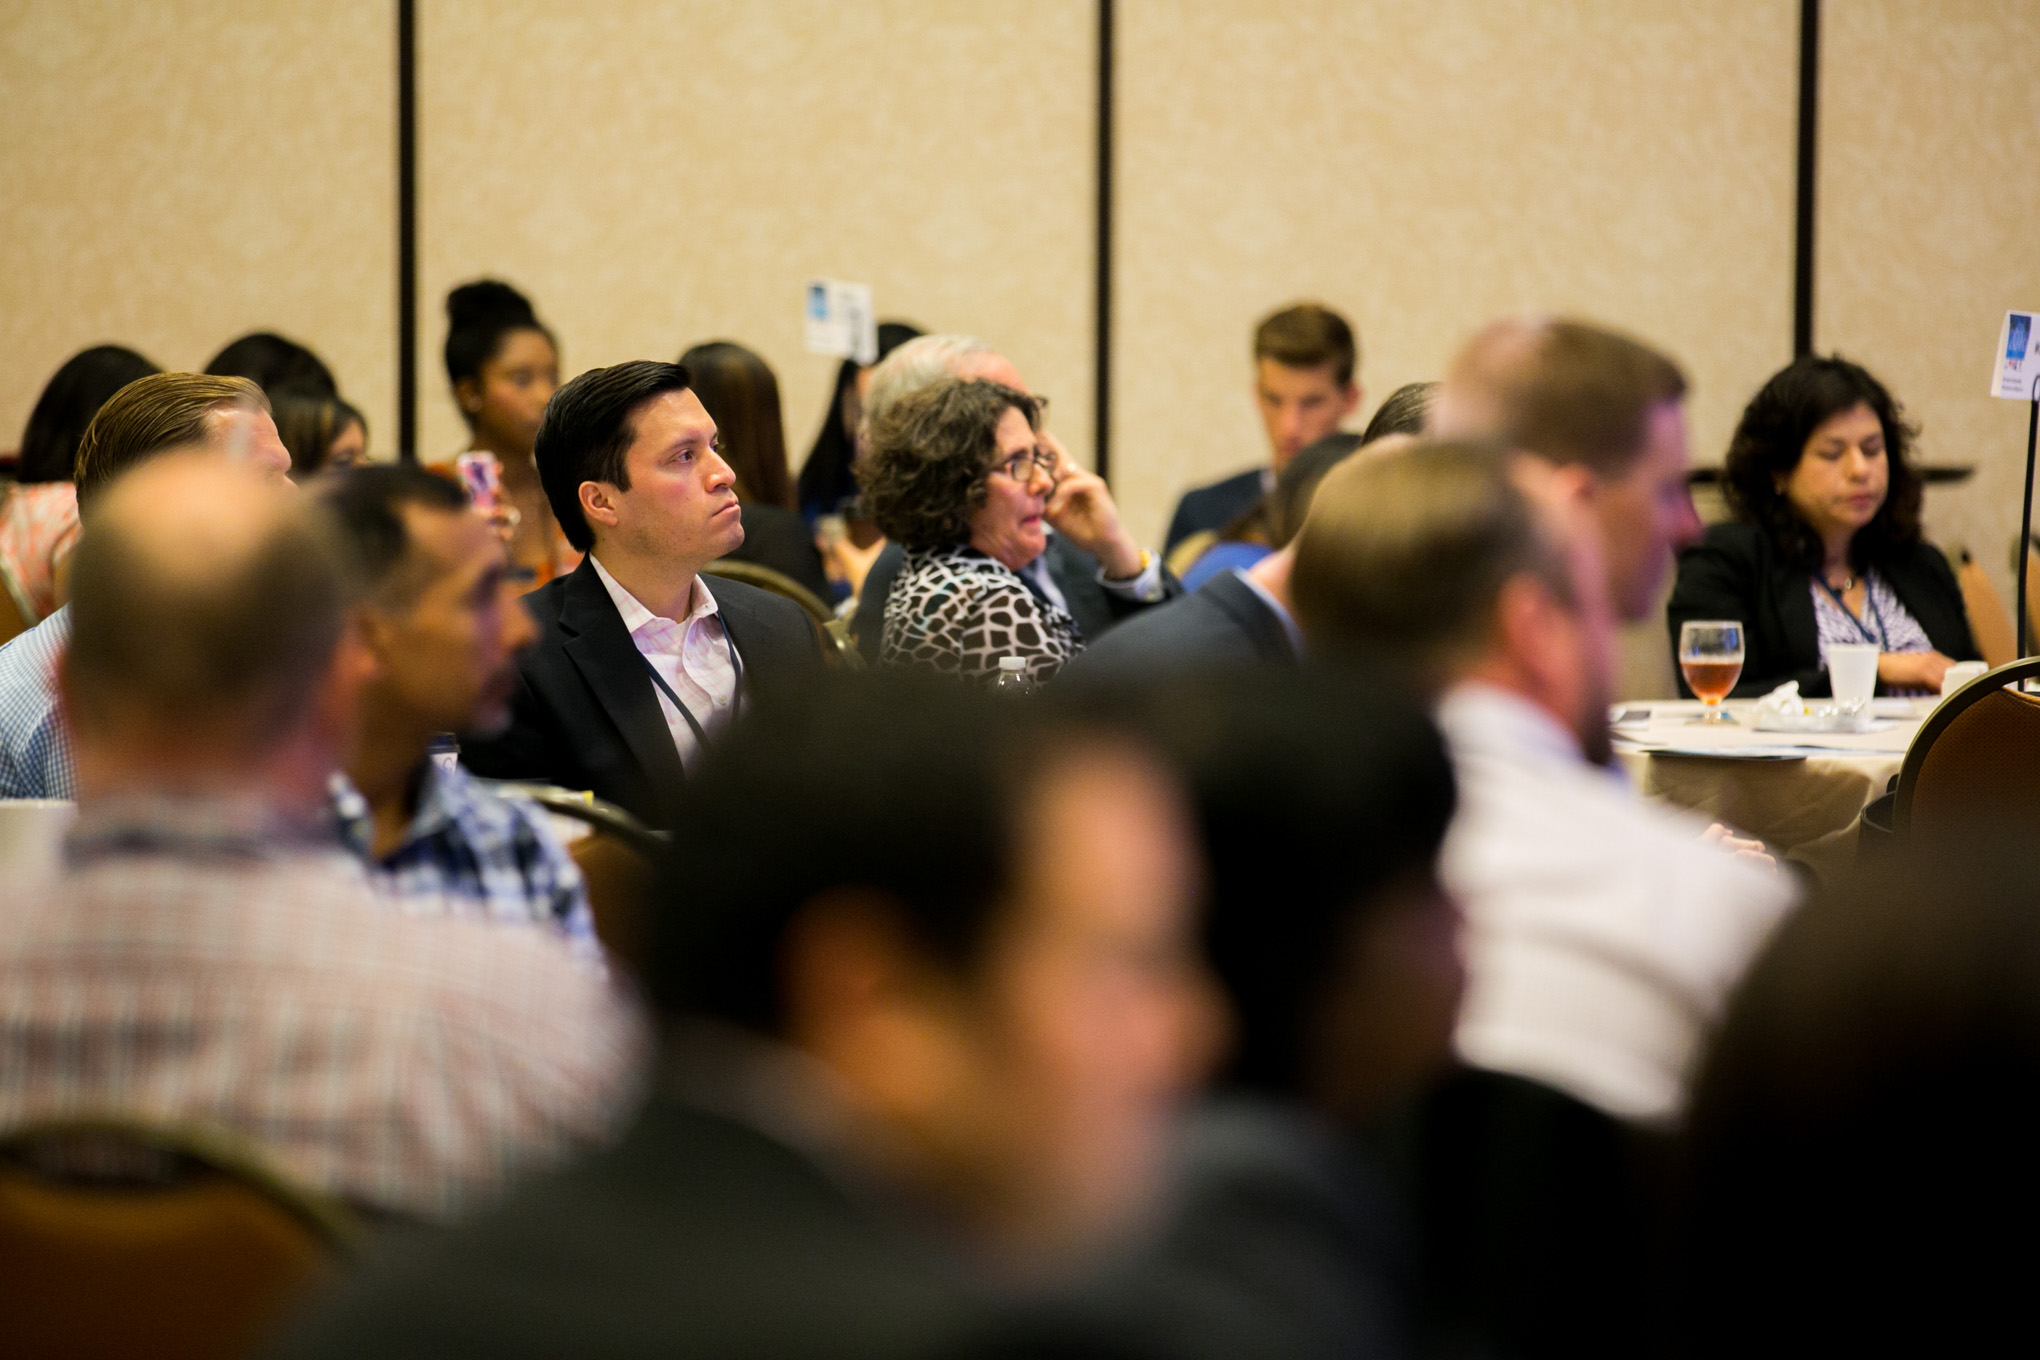 Attendees of the Cybersecurity Conference listen to talks about policy, plans and procedures developing to combat cyber crime. Photo by Kathryn Boyd-Batstone.